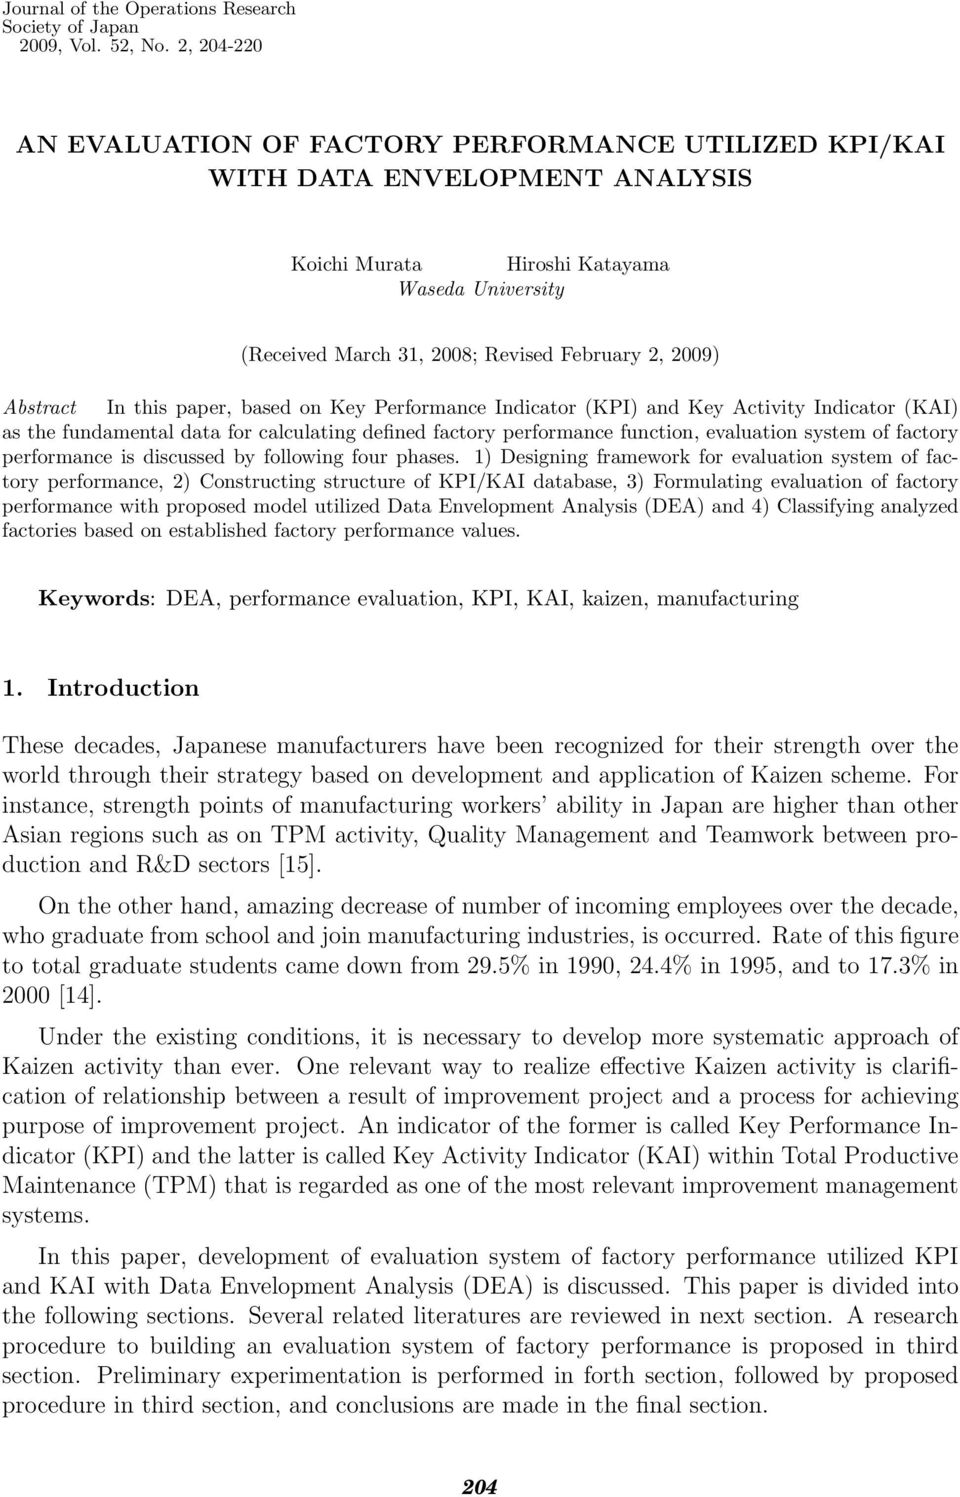 Abstract In this paper, based on Key Performance Indicator (KPI) and Key Activity Indicator (KAI) as the fundamental data for calculating defined factory performance function, evaluation system of